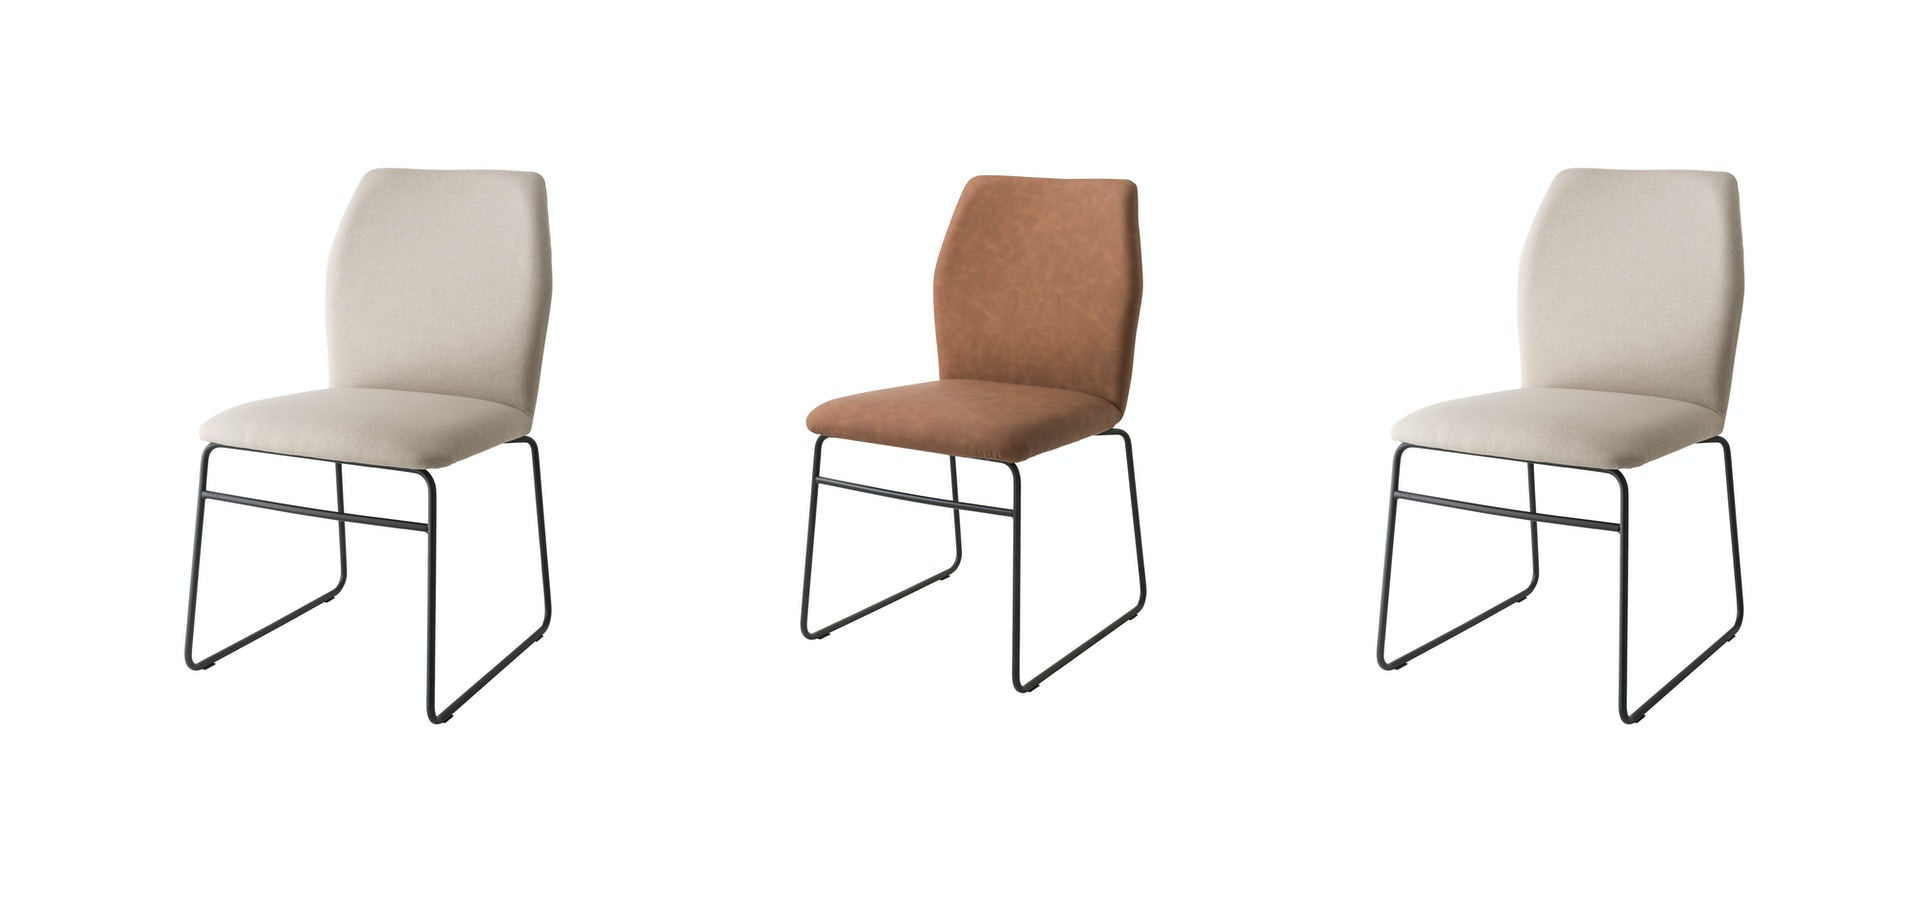 Chairs Stosa - Model Arnica 10048